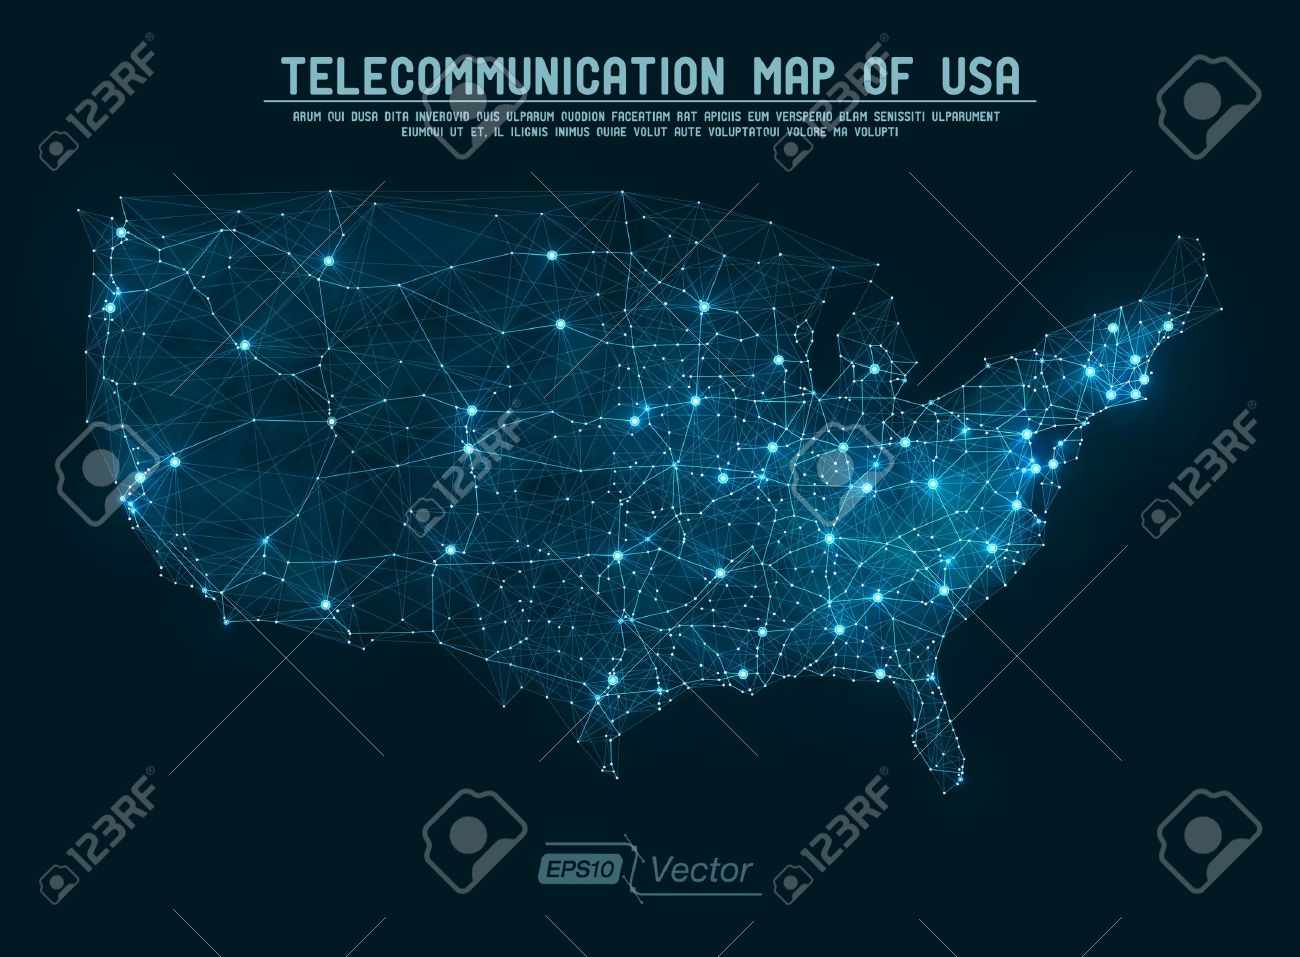 Abstract Telecommunication Network Map USA Royalty Free Cliparts - Map of usa